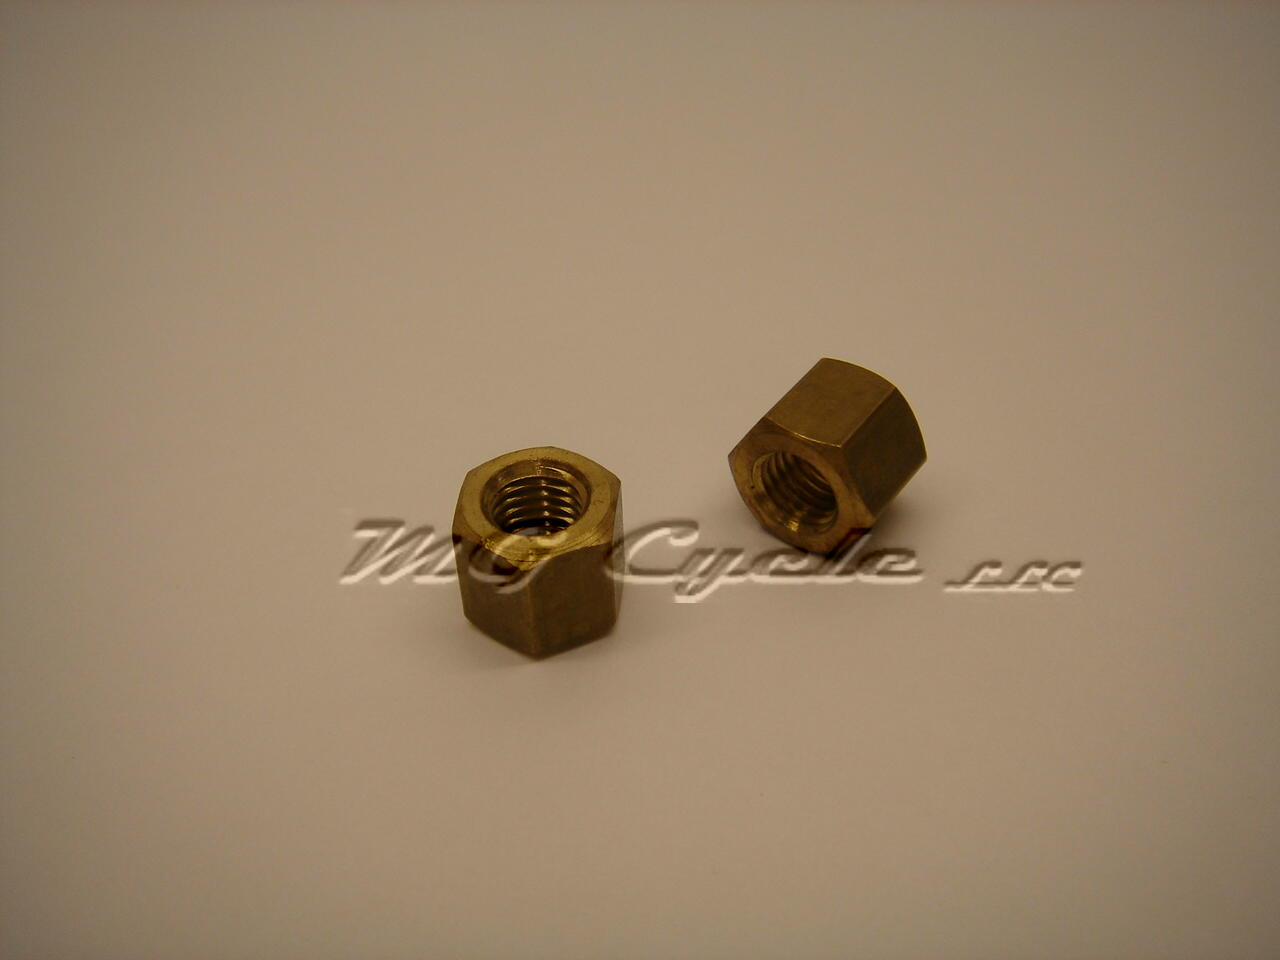 exhaust stud nut, Airone, Falcone, Ercole